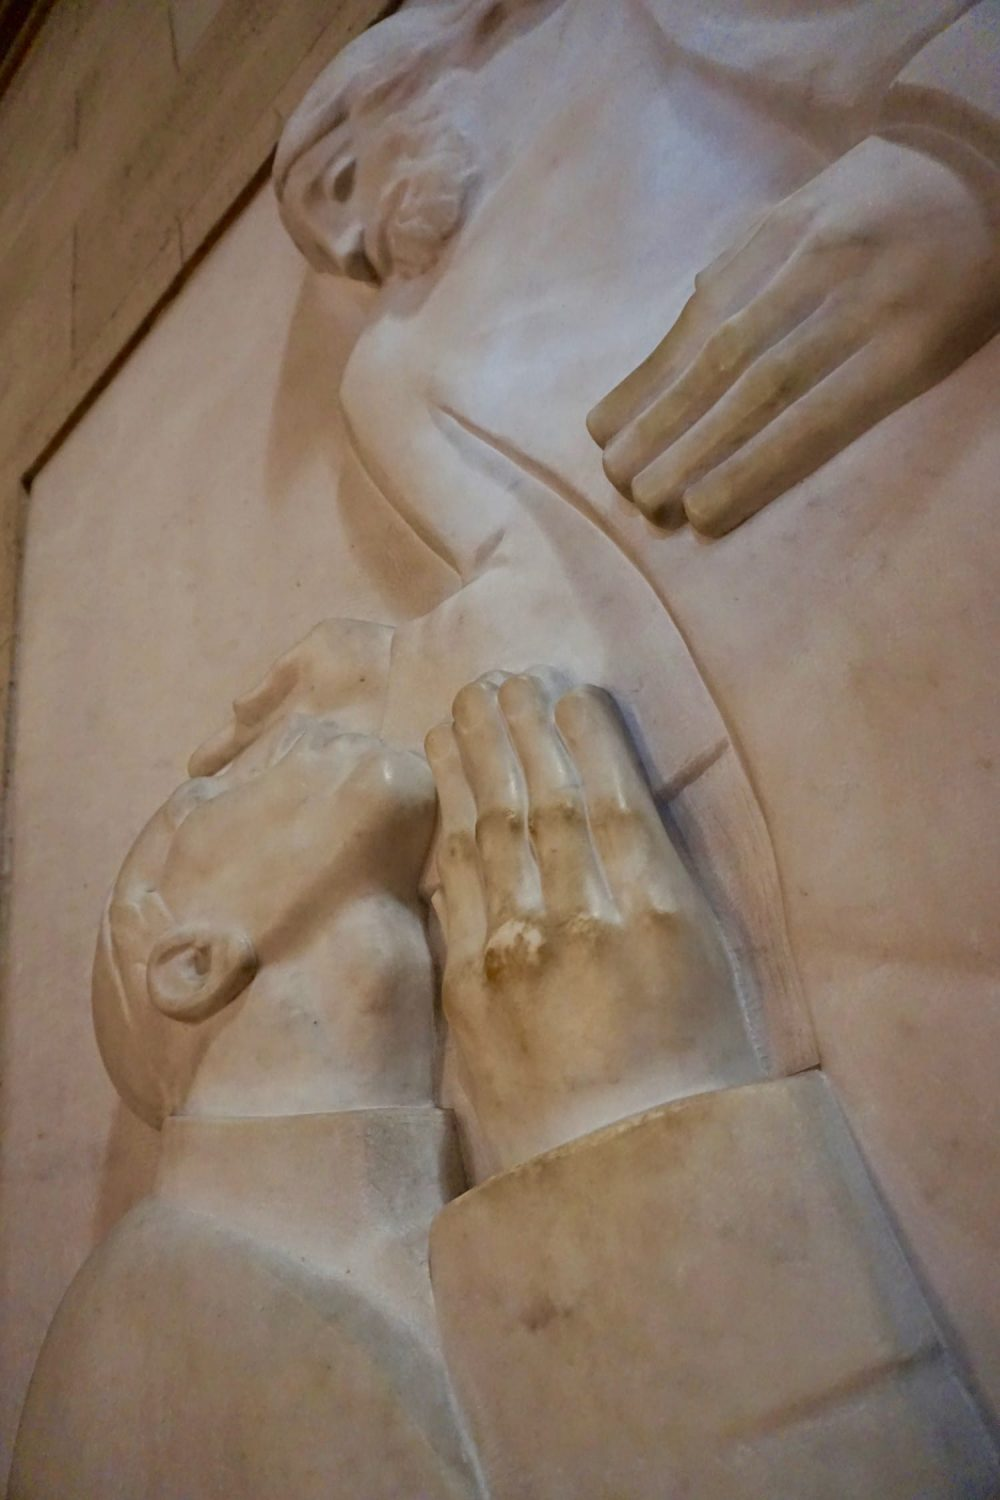 Inside Zagreb's Cathedral you'll find this bold sculpture from Mestrovic